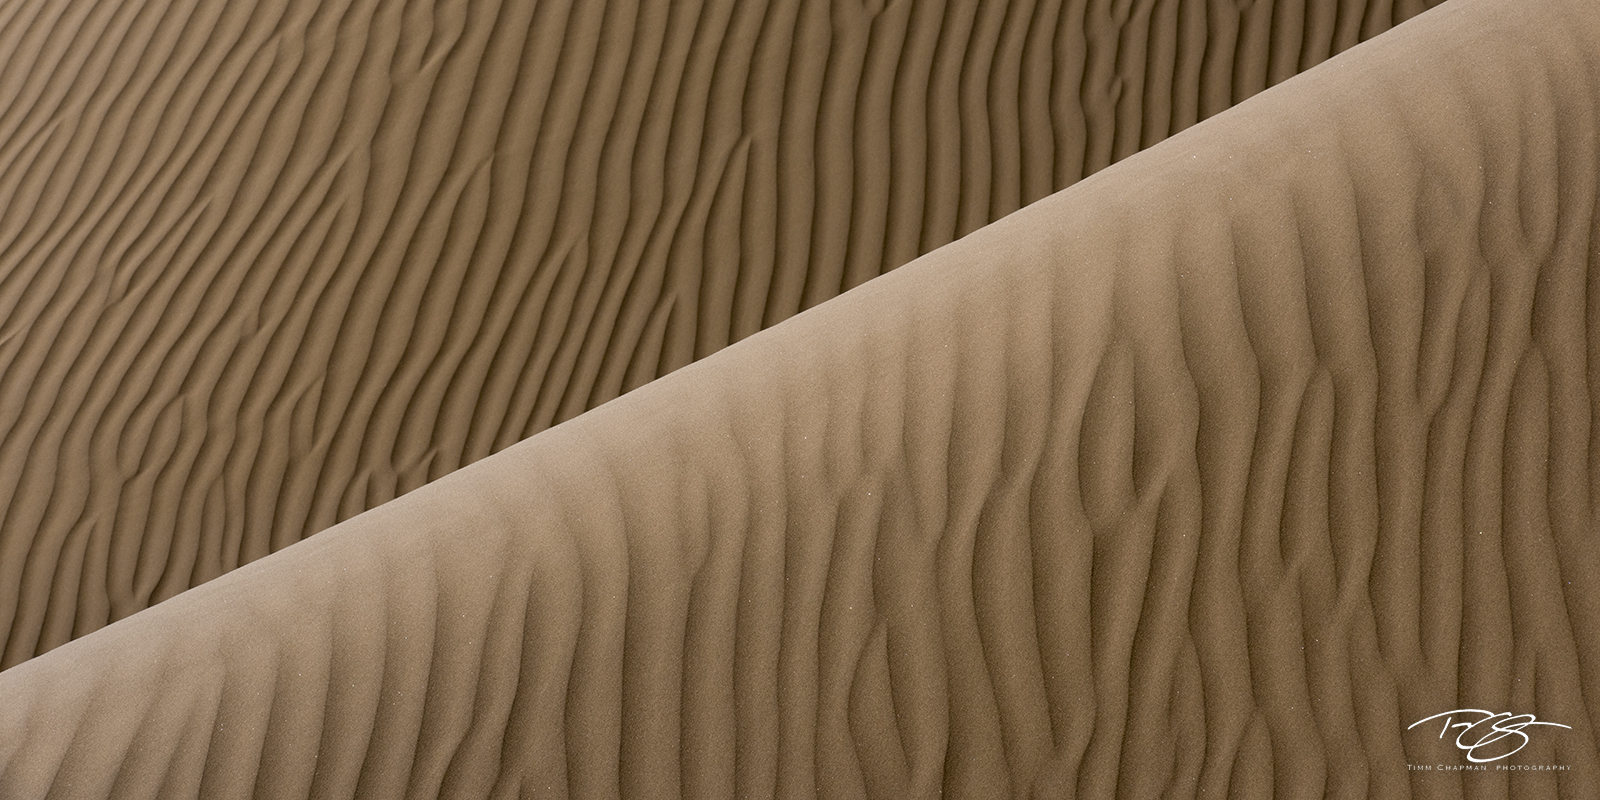 gobi desert, china, abstract, patterns, sand dune, sand, dune, desert, furrowed, wrinkles, wrinkled, gobi, panorama, photo